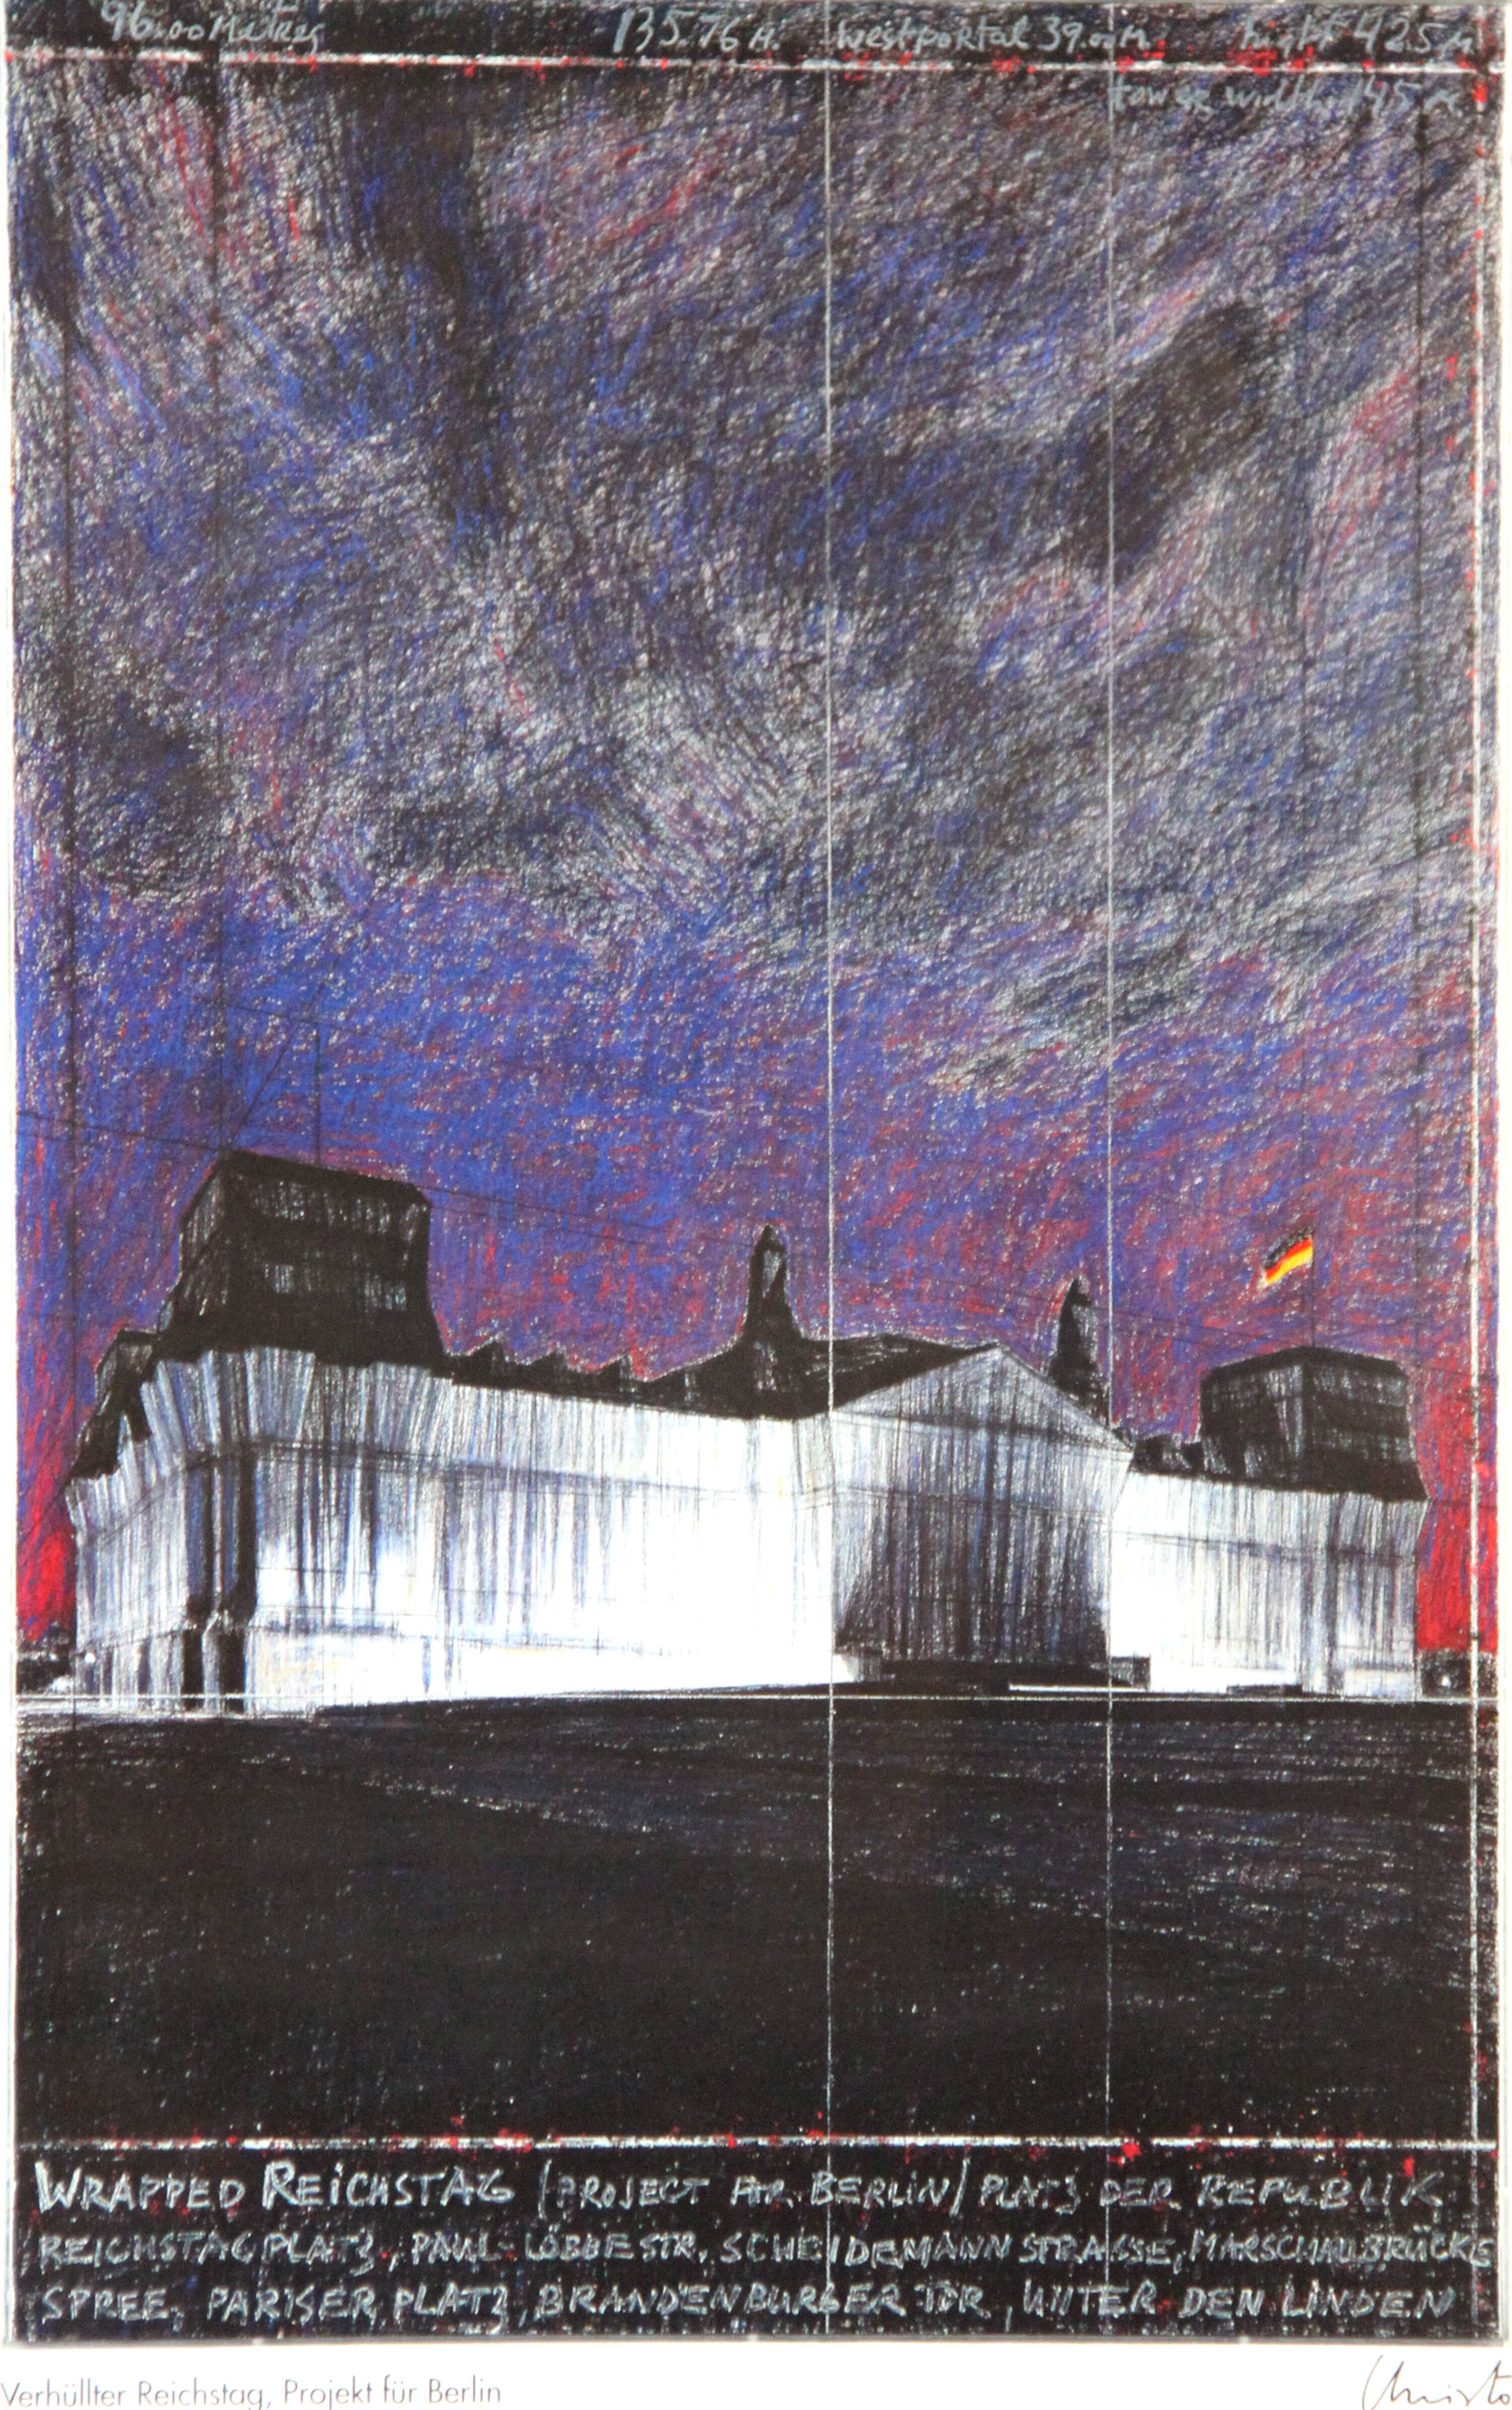 CHRISTO (Christo Javacheff) - 'Wrapped Reichstag (Project for Berlin)'